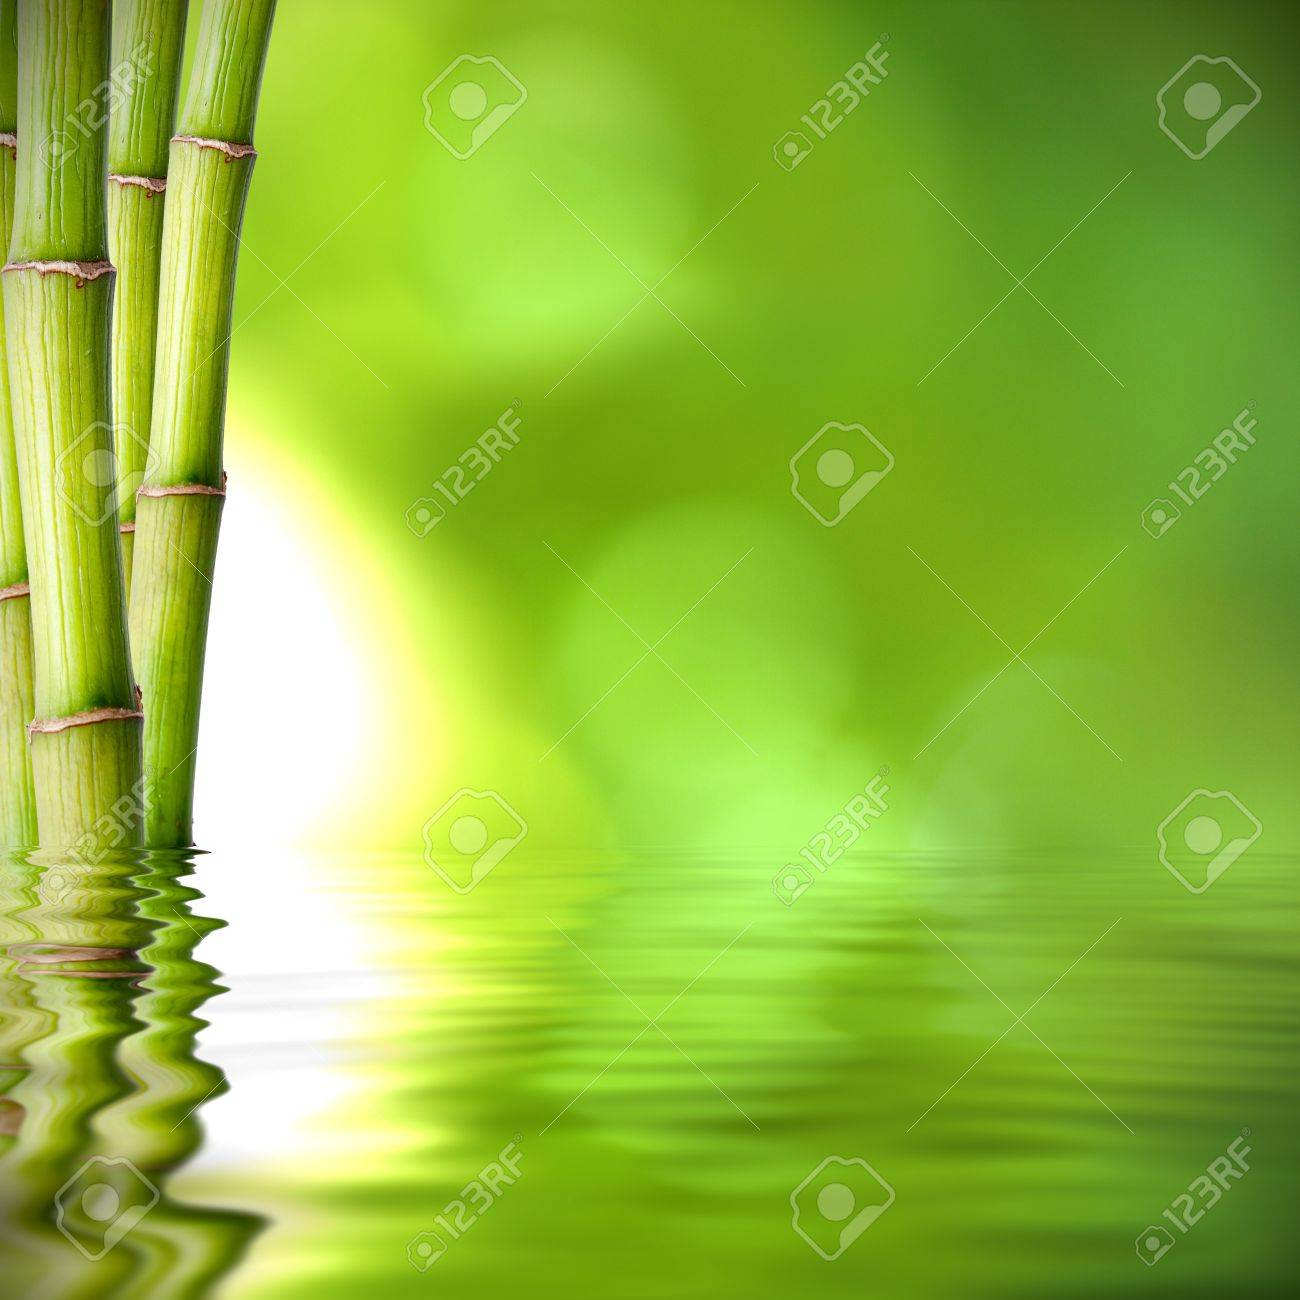 background of natural spa with plant and reflection in the water - 14777153